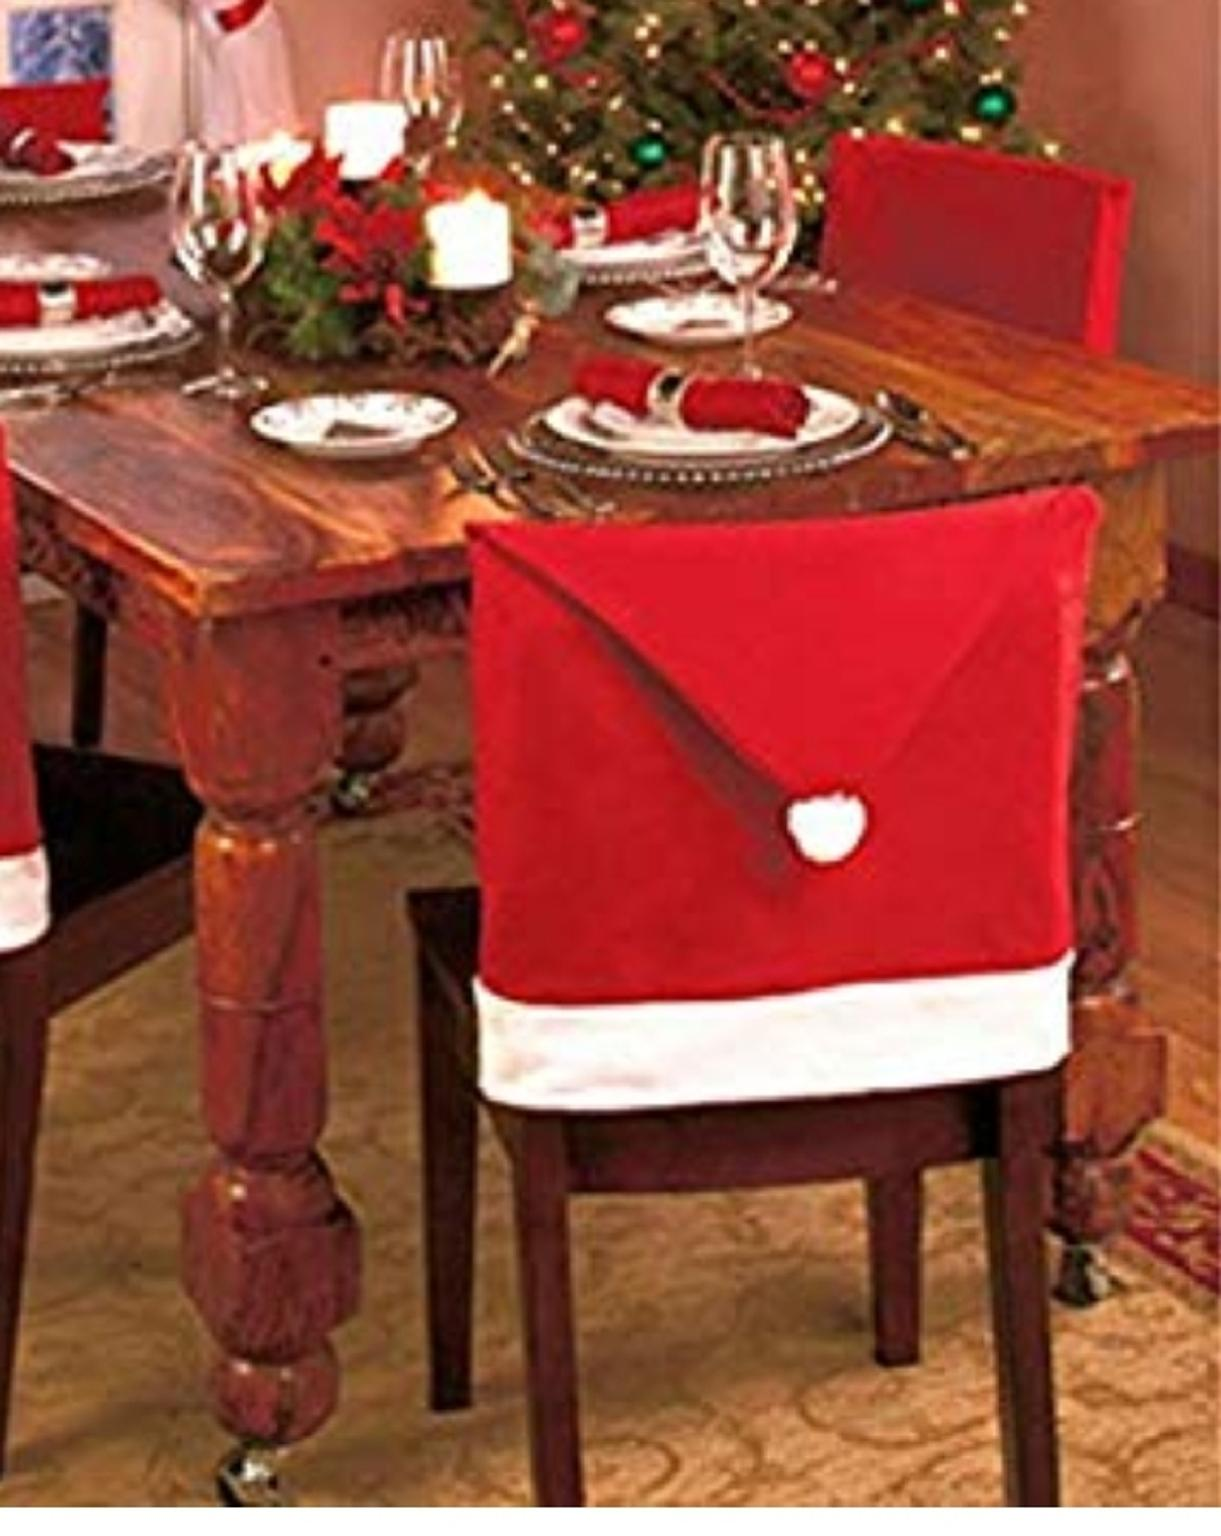 Winter Party Supplies Party Decor Holiday Party Decorations Christmas Table Decor Plastic Table Cover Santa Suit Santa Tablecloth